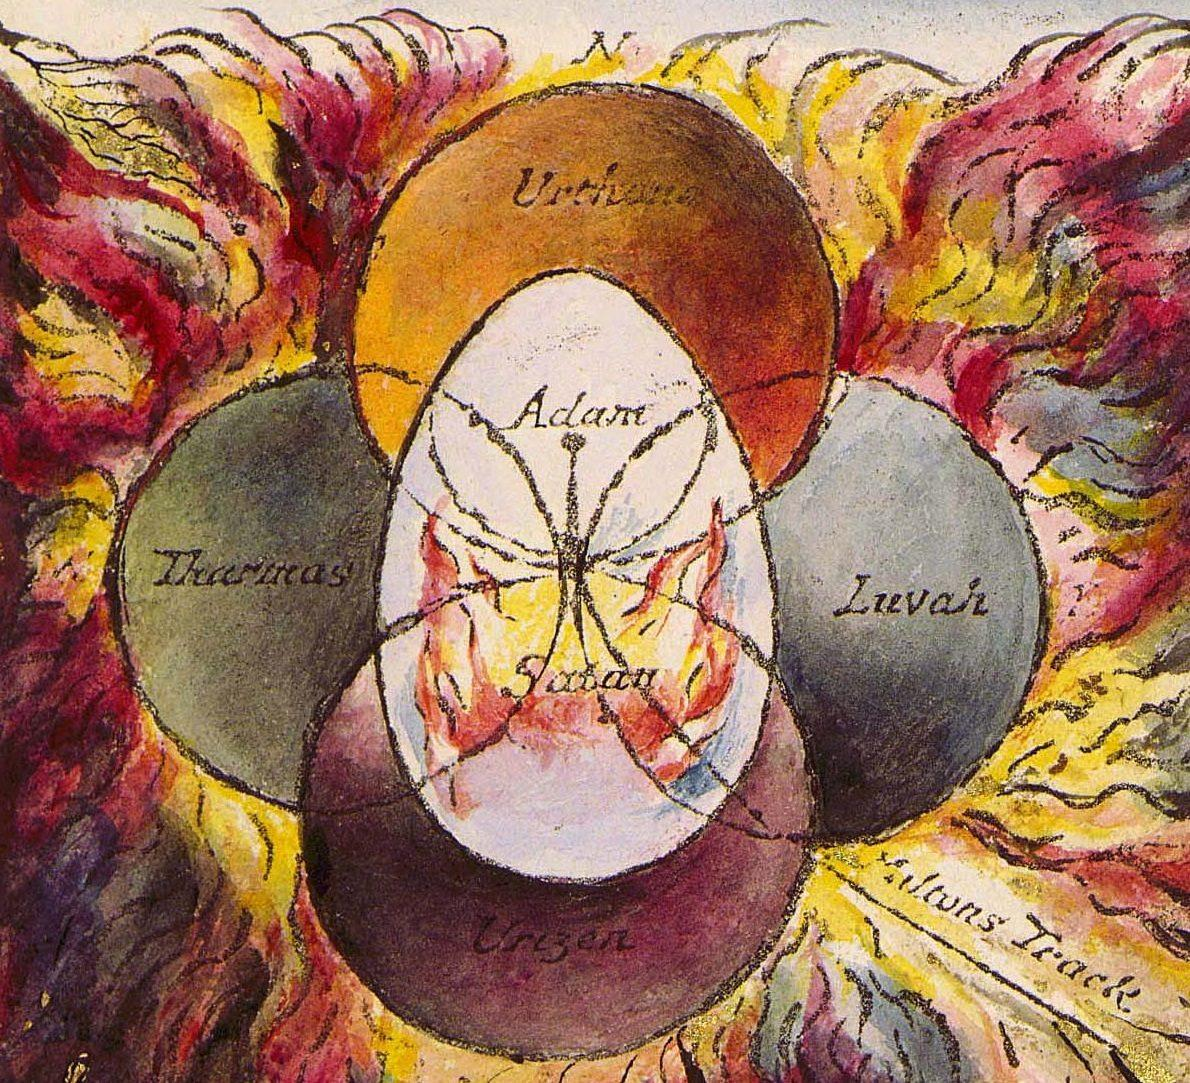 5 Of William Blakes Occult Paintings And Their Symbolism Adept